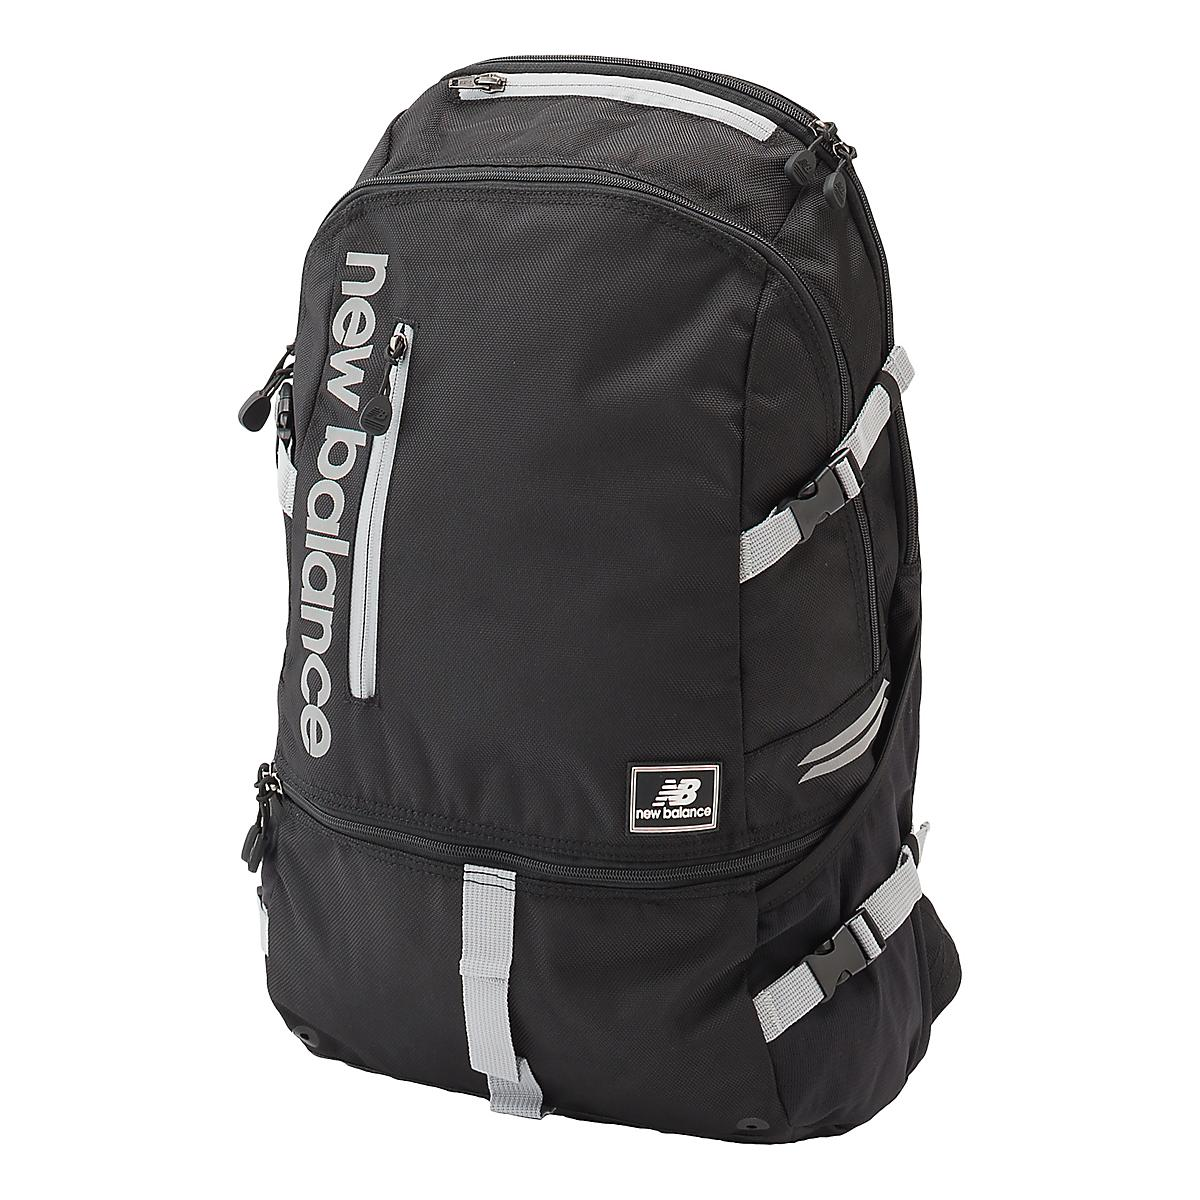 New Balance Commuter Backpack V2 Bags at Road Runner Sports 3076566199ddd